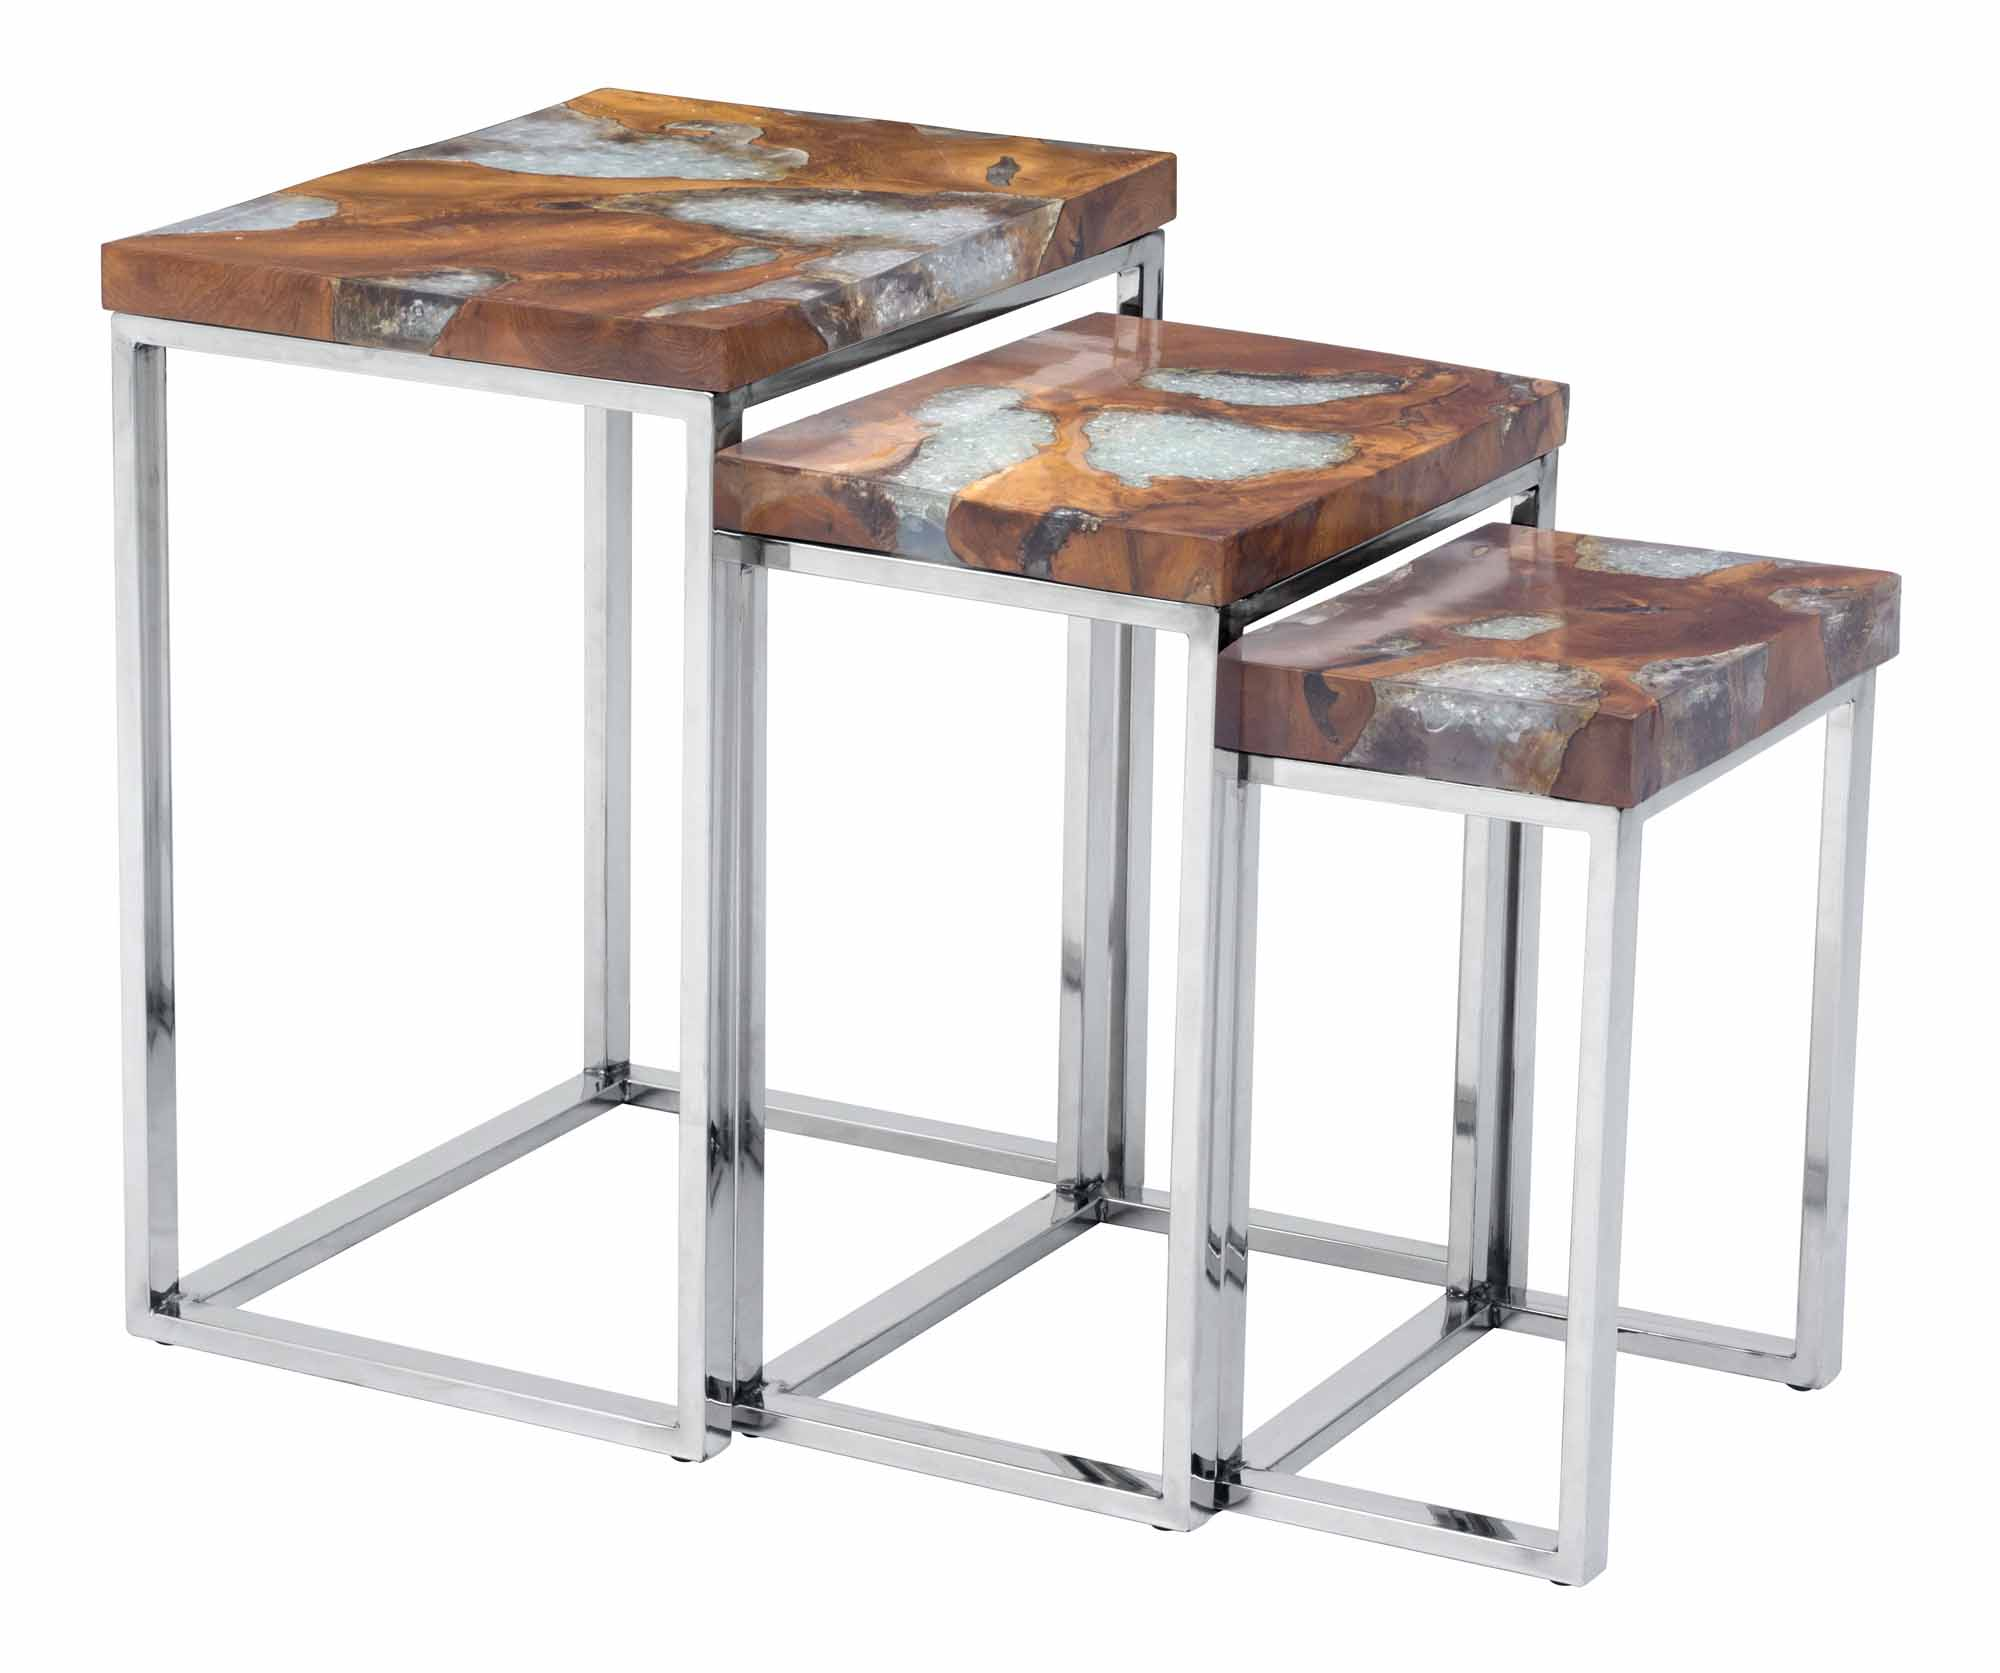 Fissure Nesting Tables By Zuo Modern